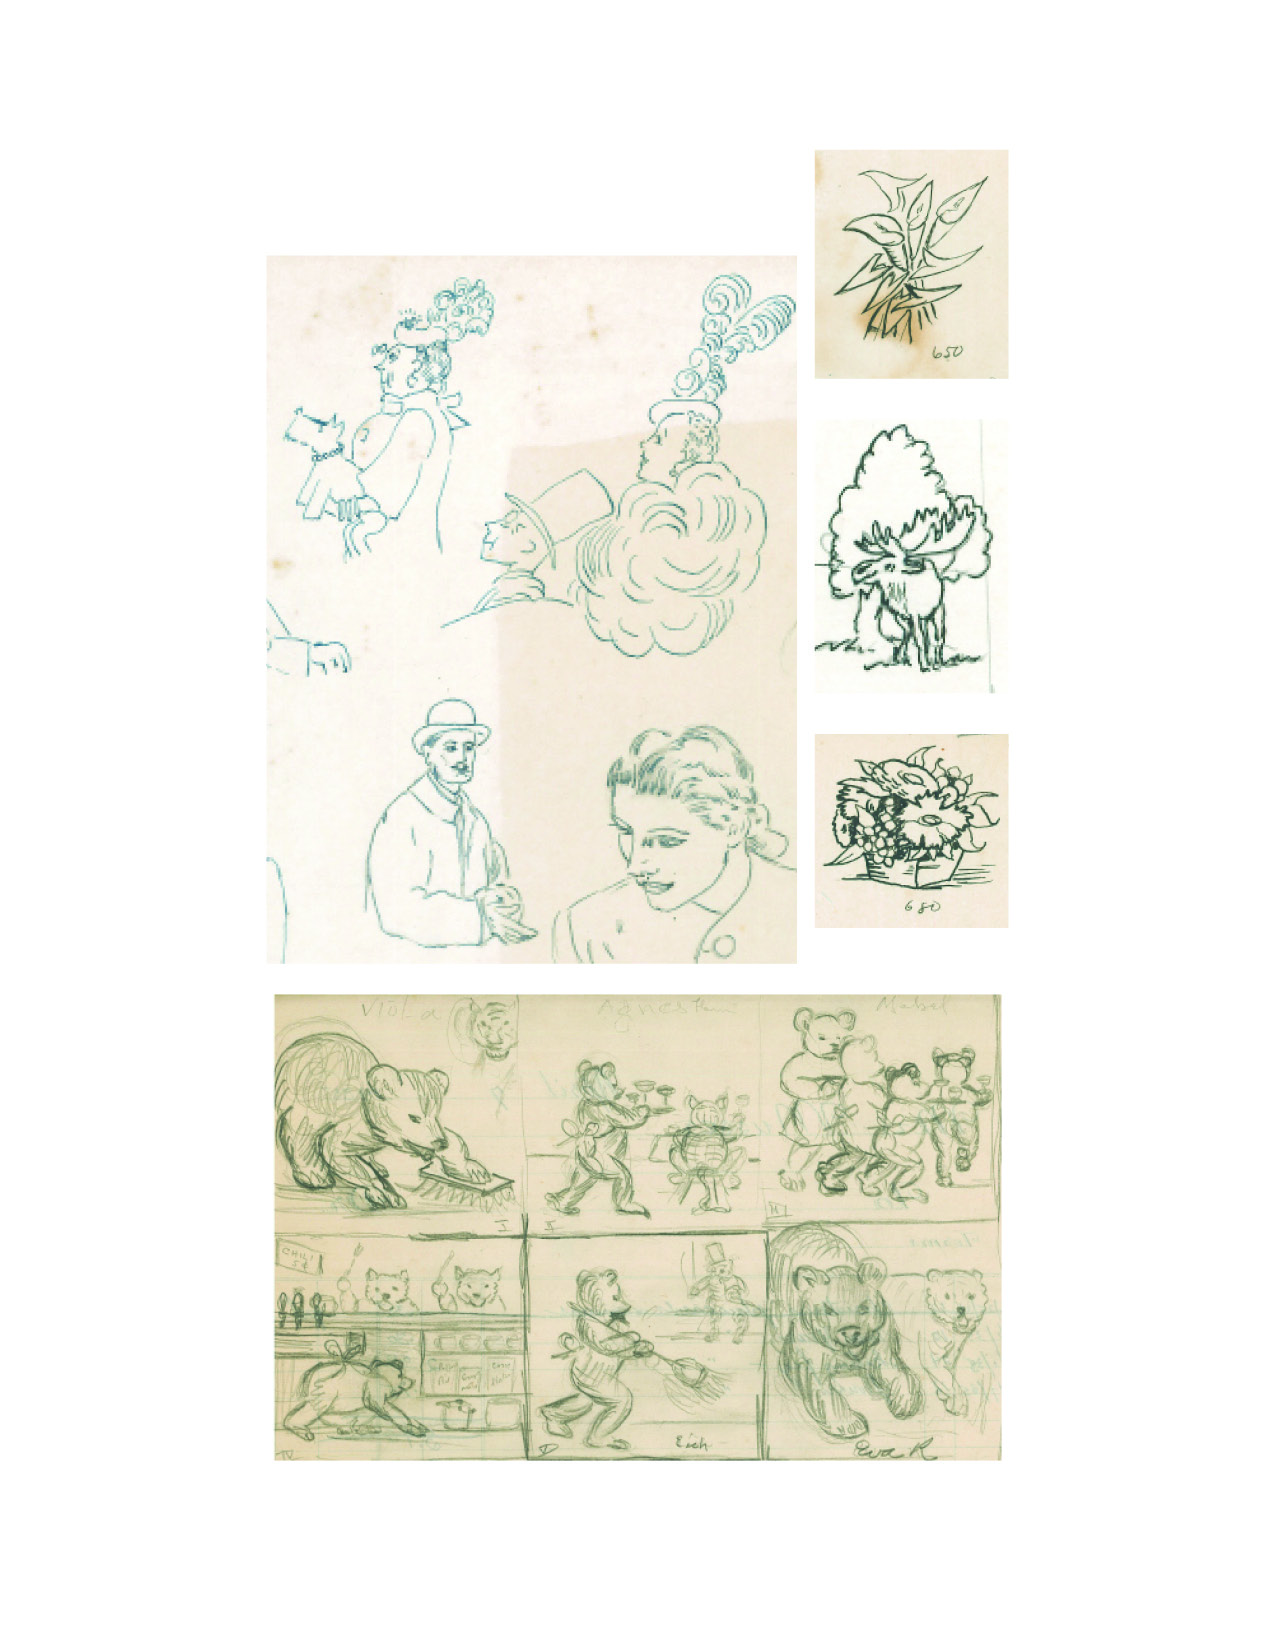 A selection of drawings by Jane Moyer from the collections of the Morrison County Historical Society.